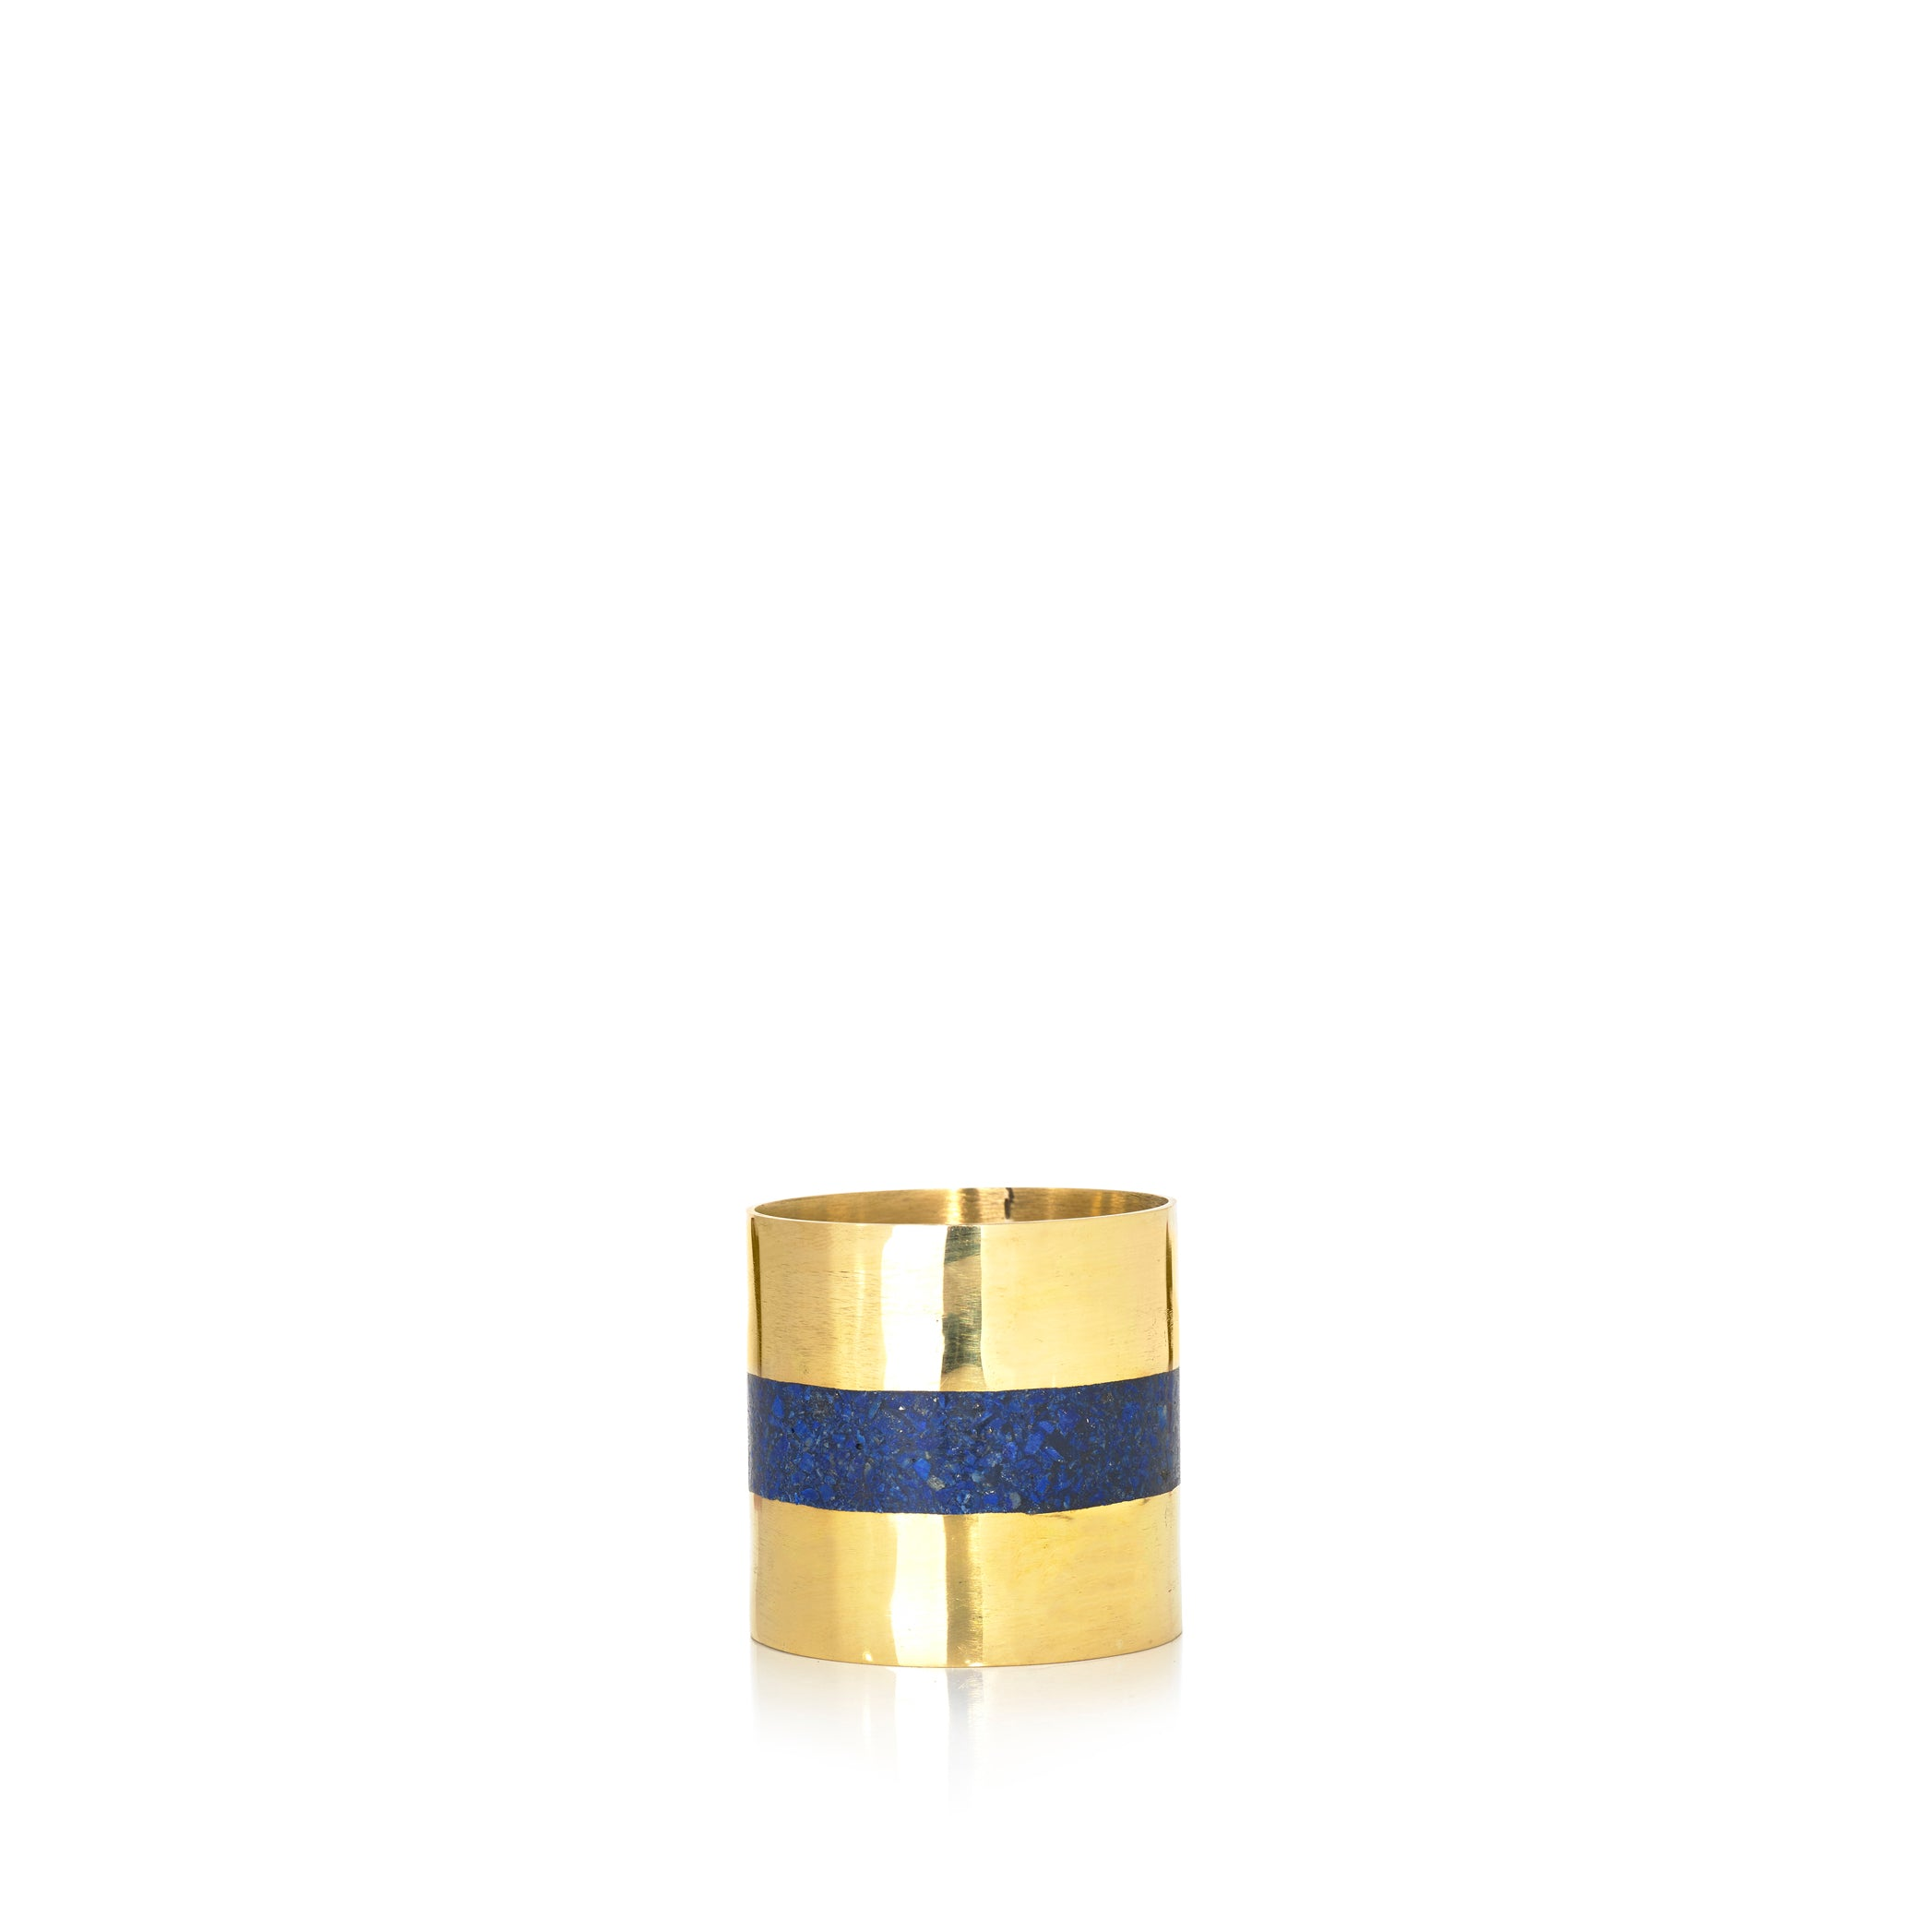 S&B x Pippa Small Lapis Inlaid Napkin Ring, Horizontal Single Stripe